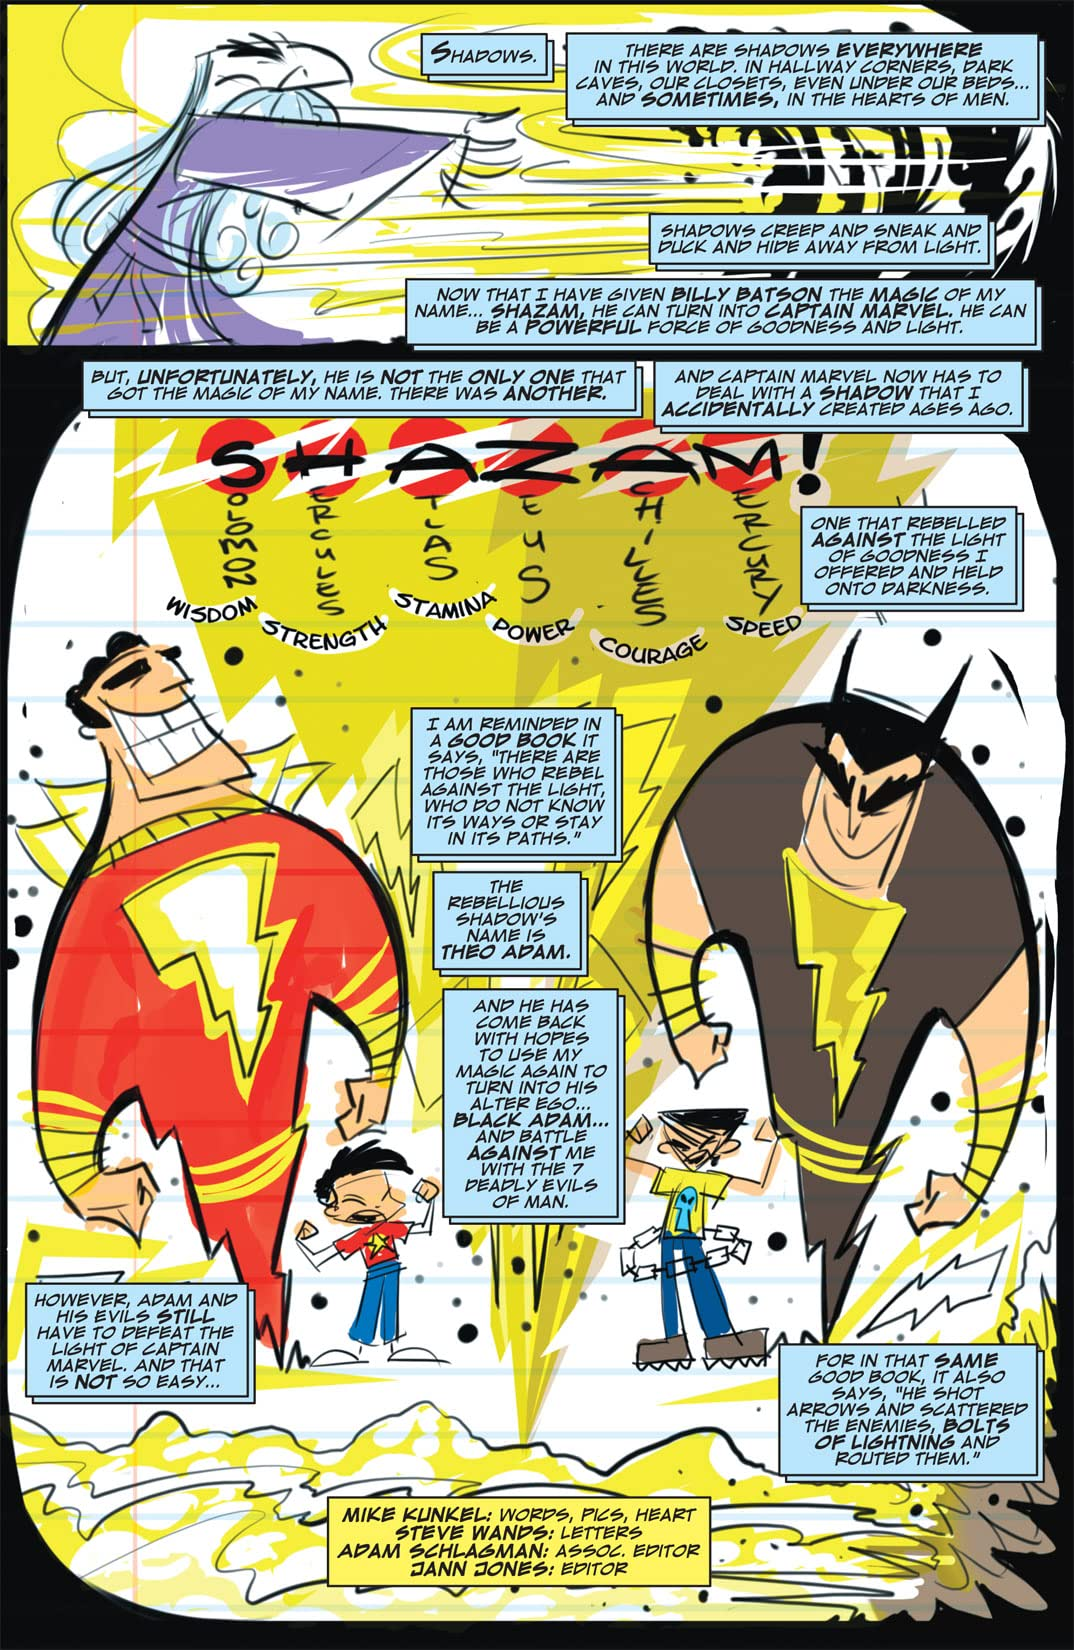 Billy Batson and the Magic of Shazam! #3